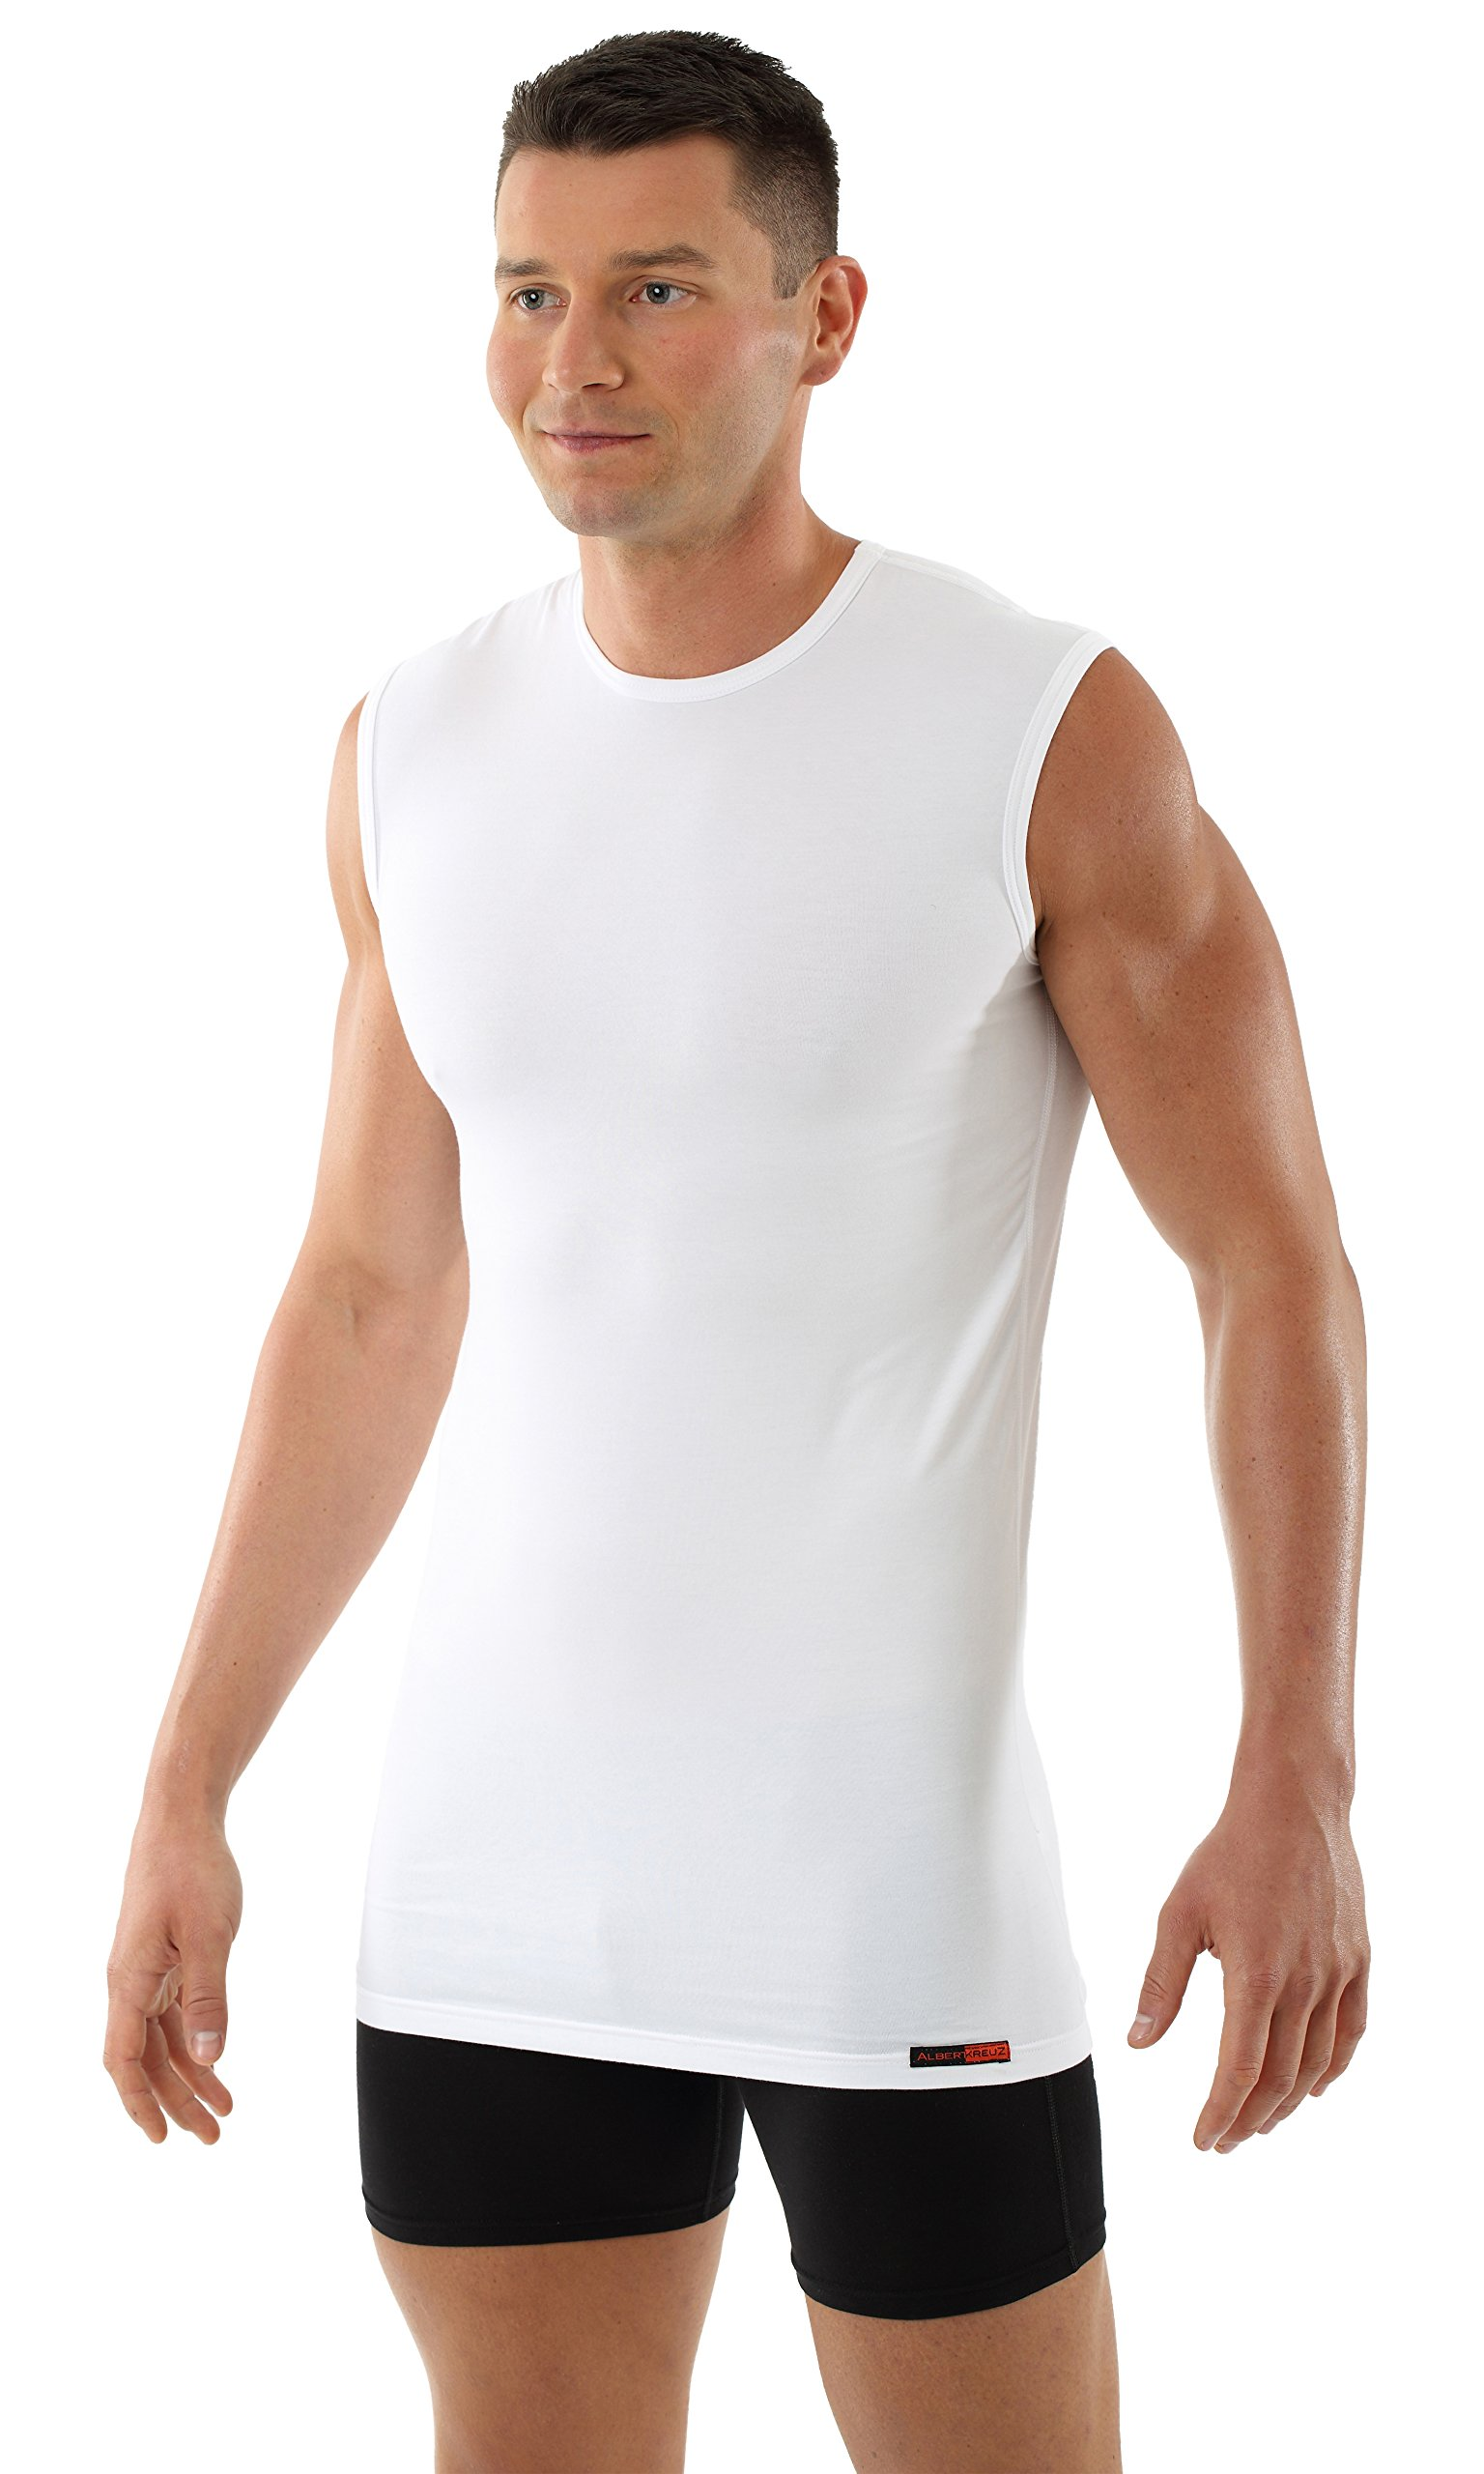 ALBERT KREUZ Men's Sleeveless U-Neck Business Undershirt Stretch-Cotton White L